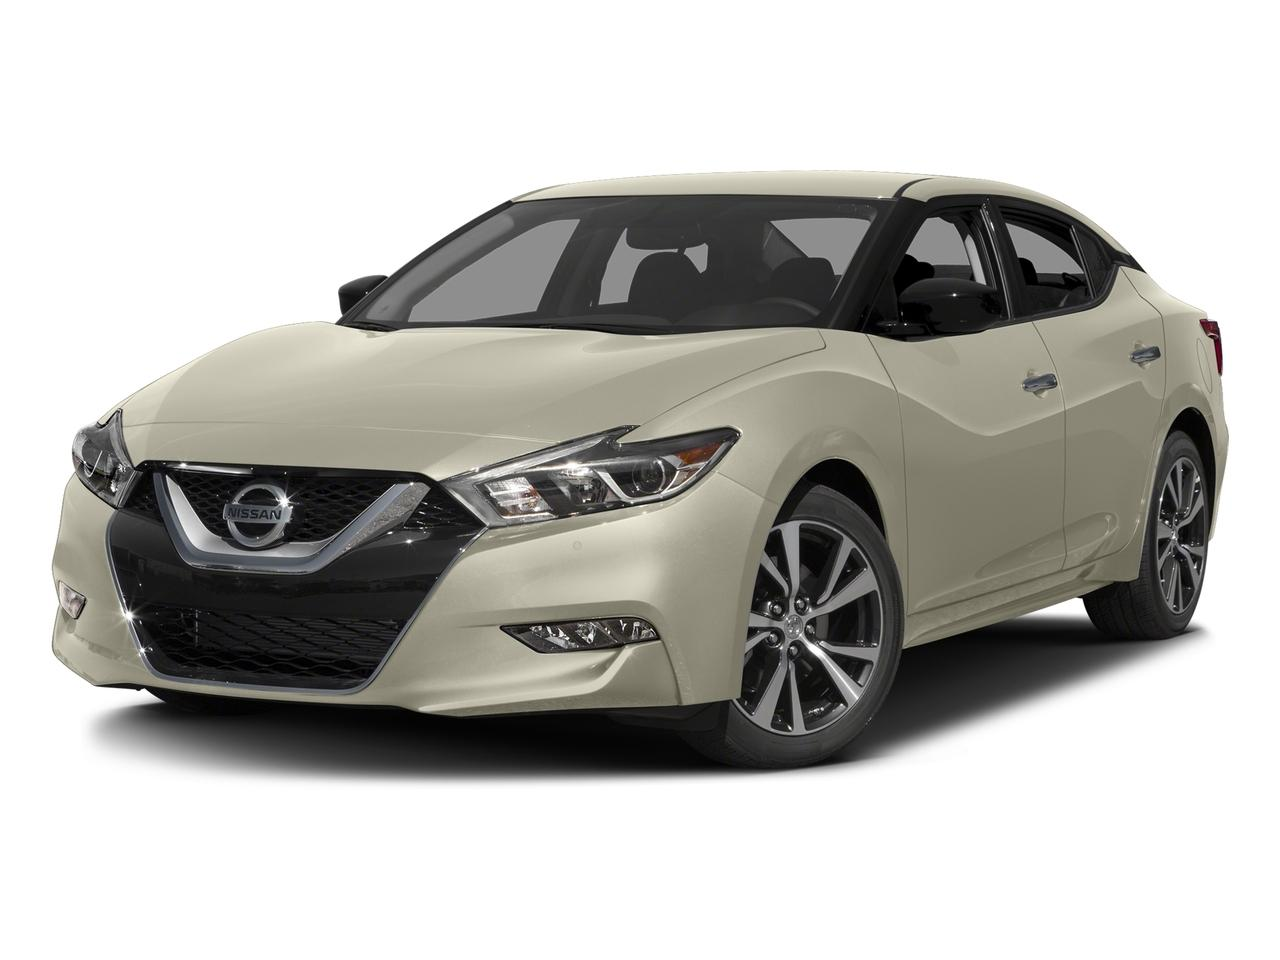 2016 Nissan Maxima Vehicle Photo in TEMPLE, TX 76504-3447